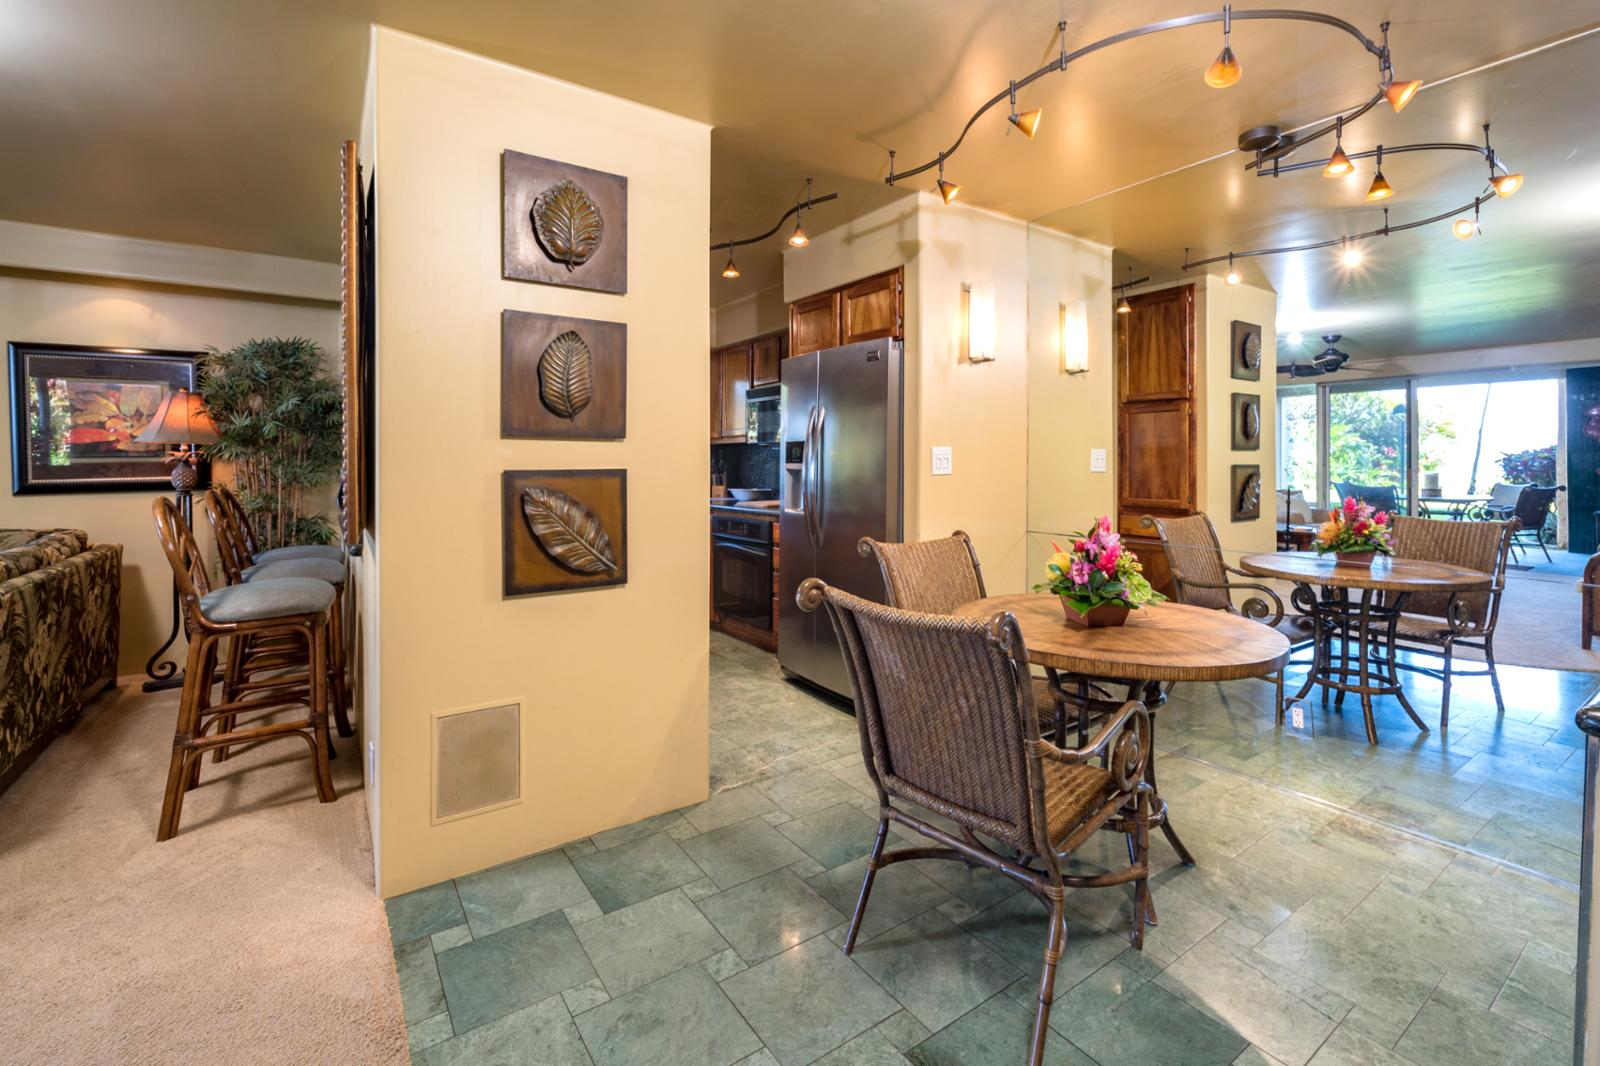 Additional seating areas, breakfast nook and additional dining seating for (2)